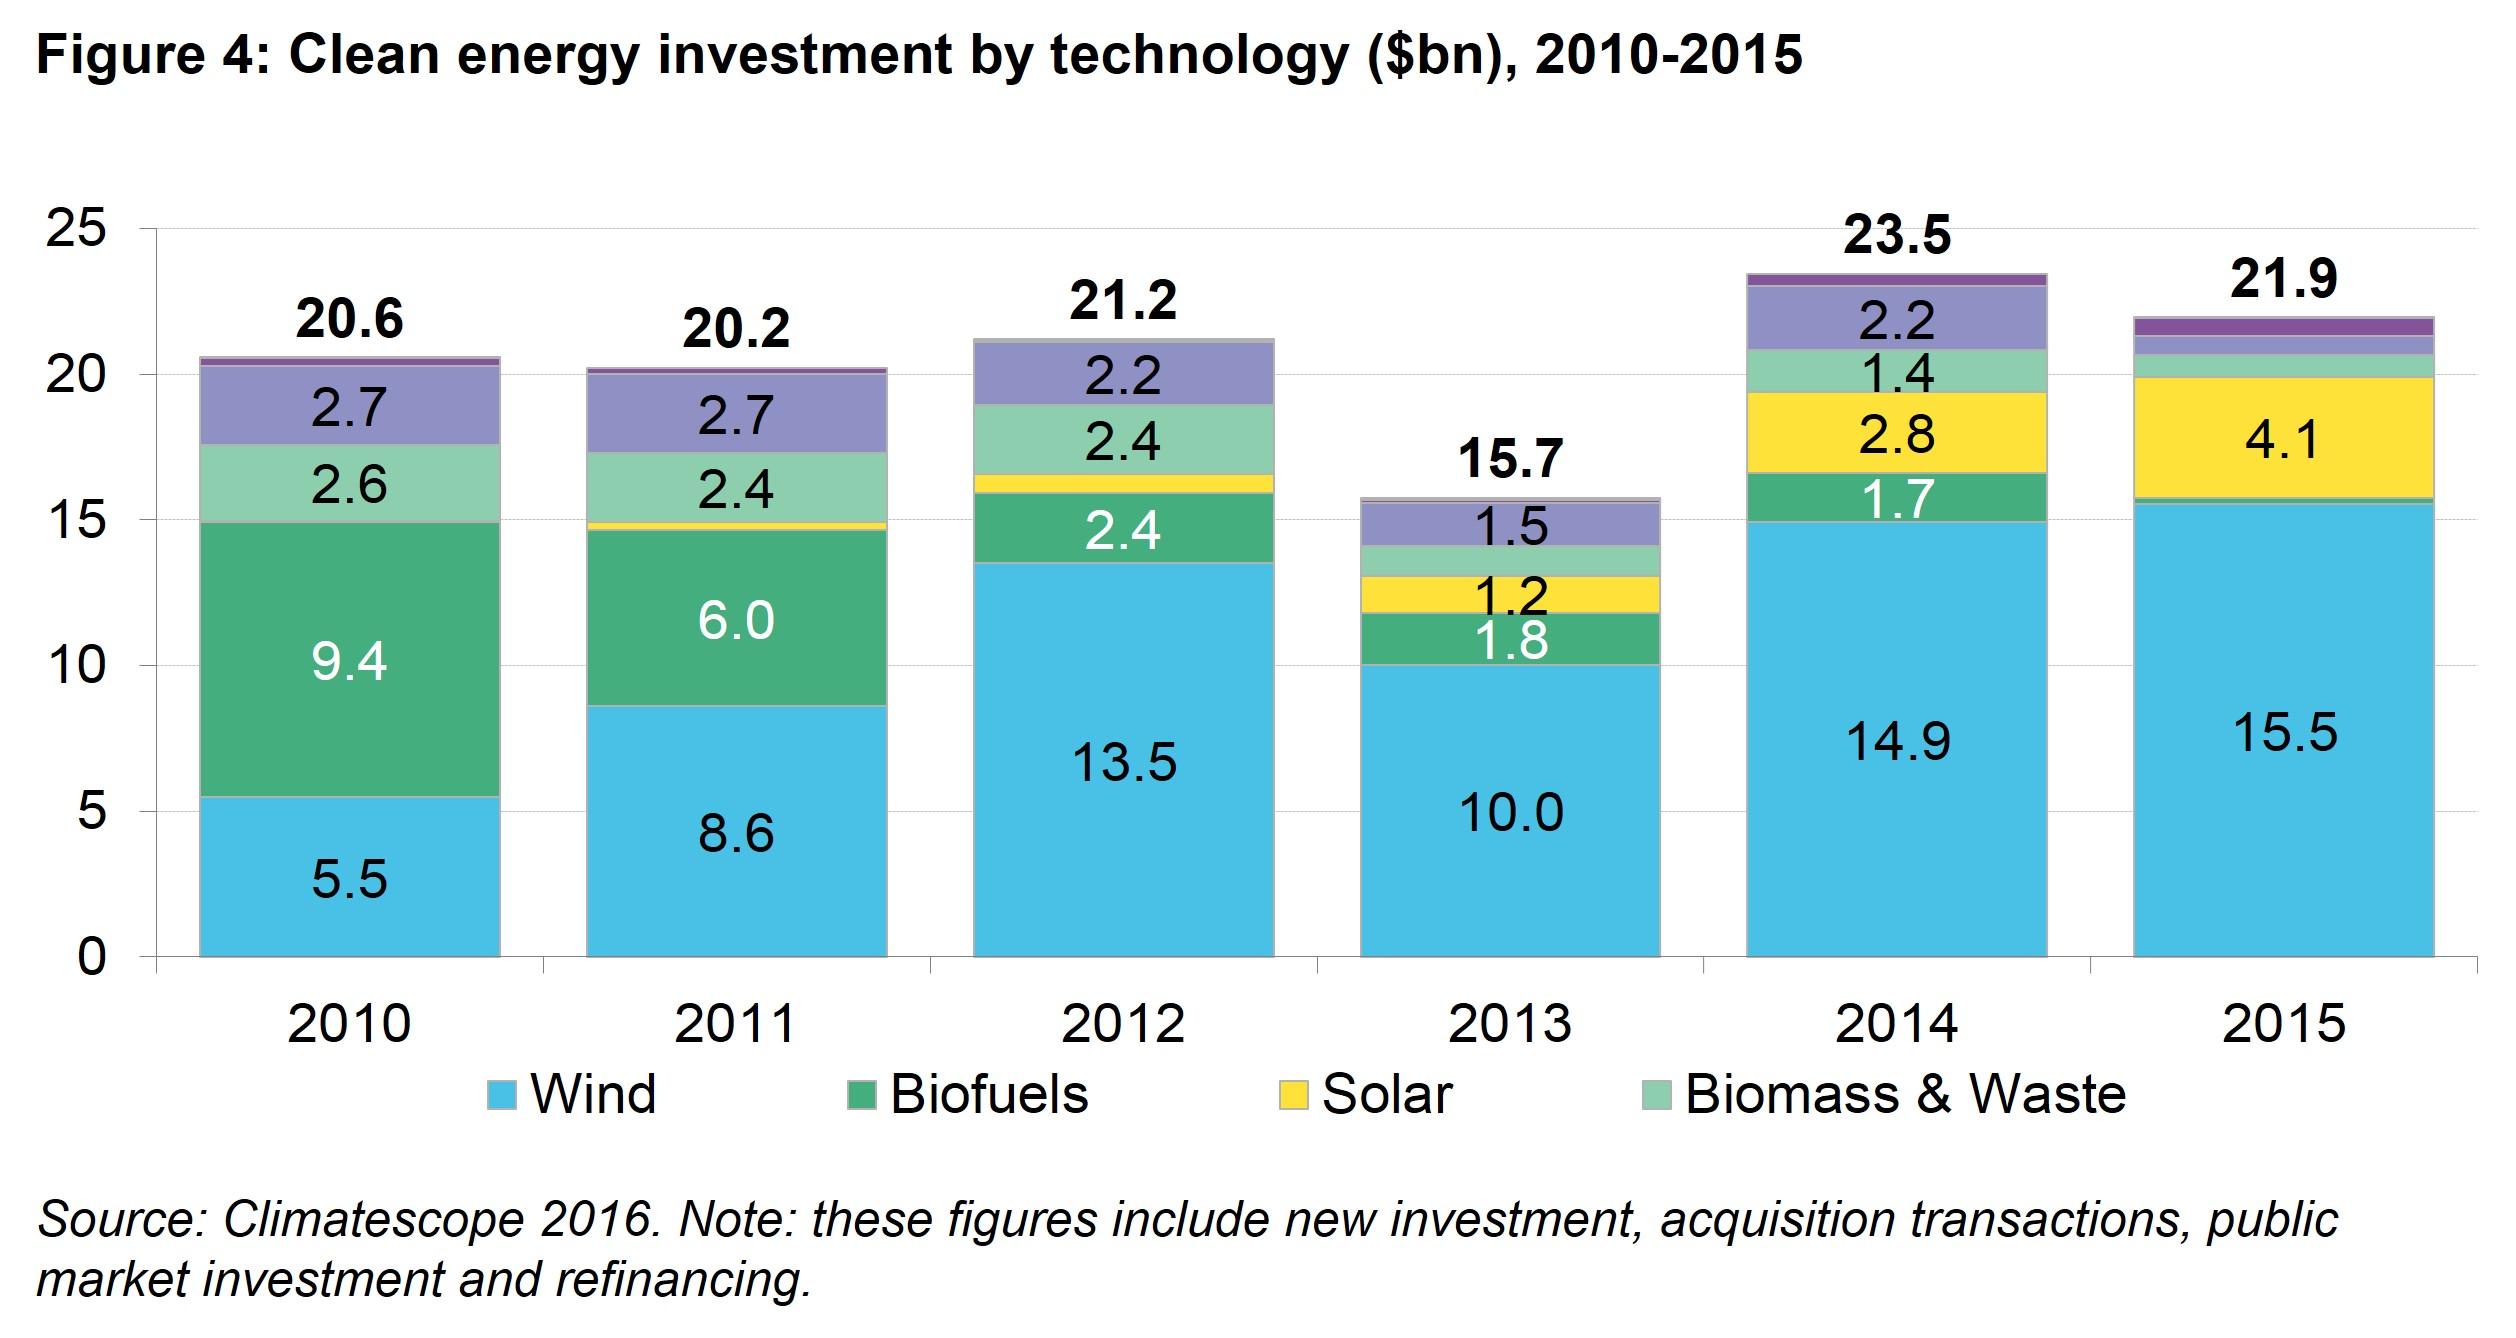 LAC Fig 4 - Clean energy investment by source, 2010 - 2015